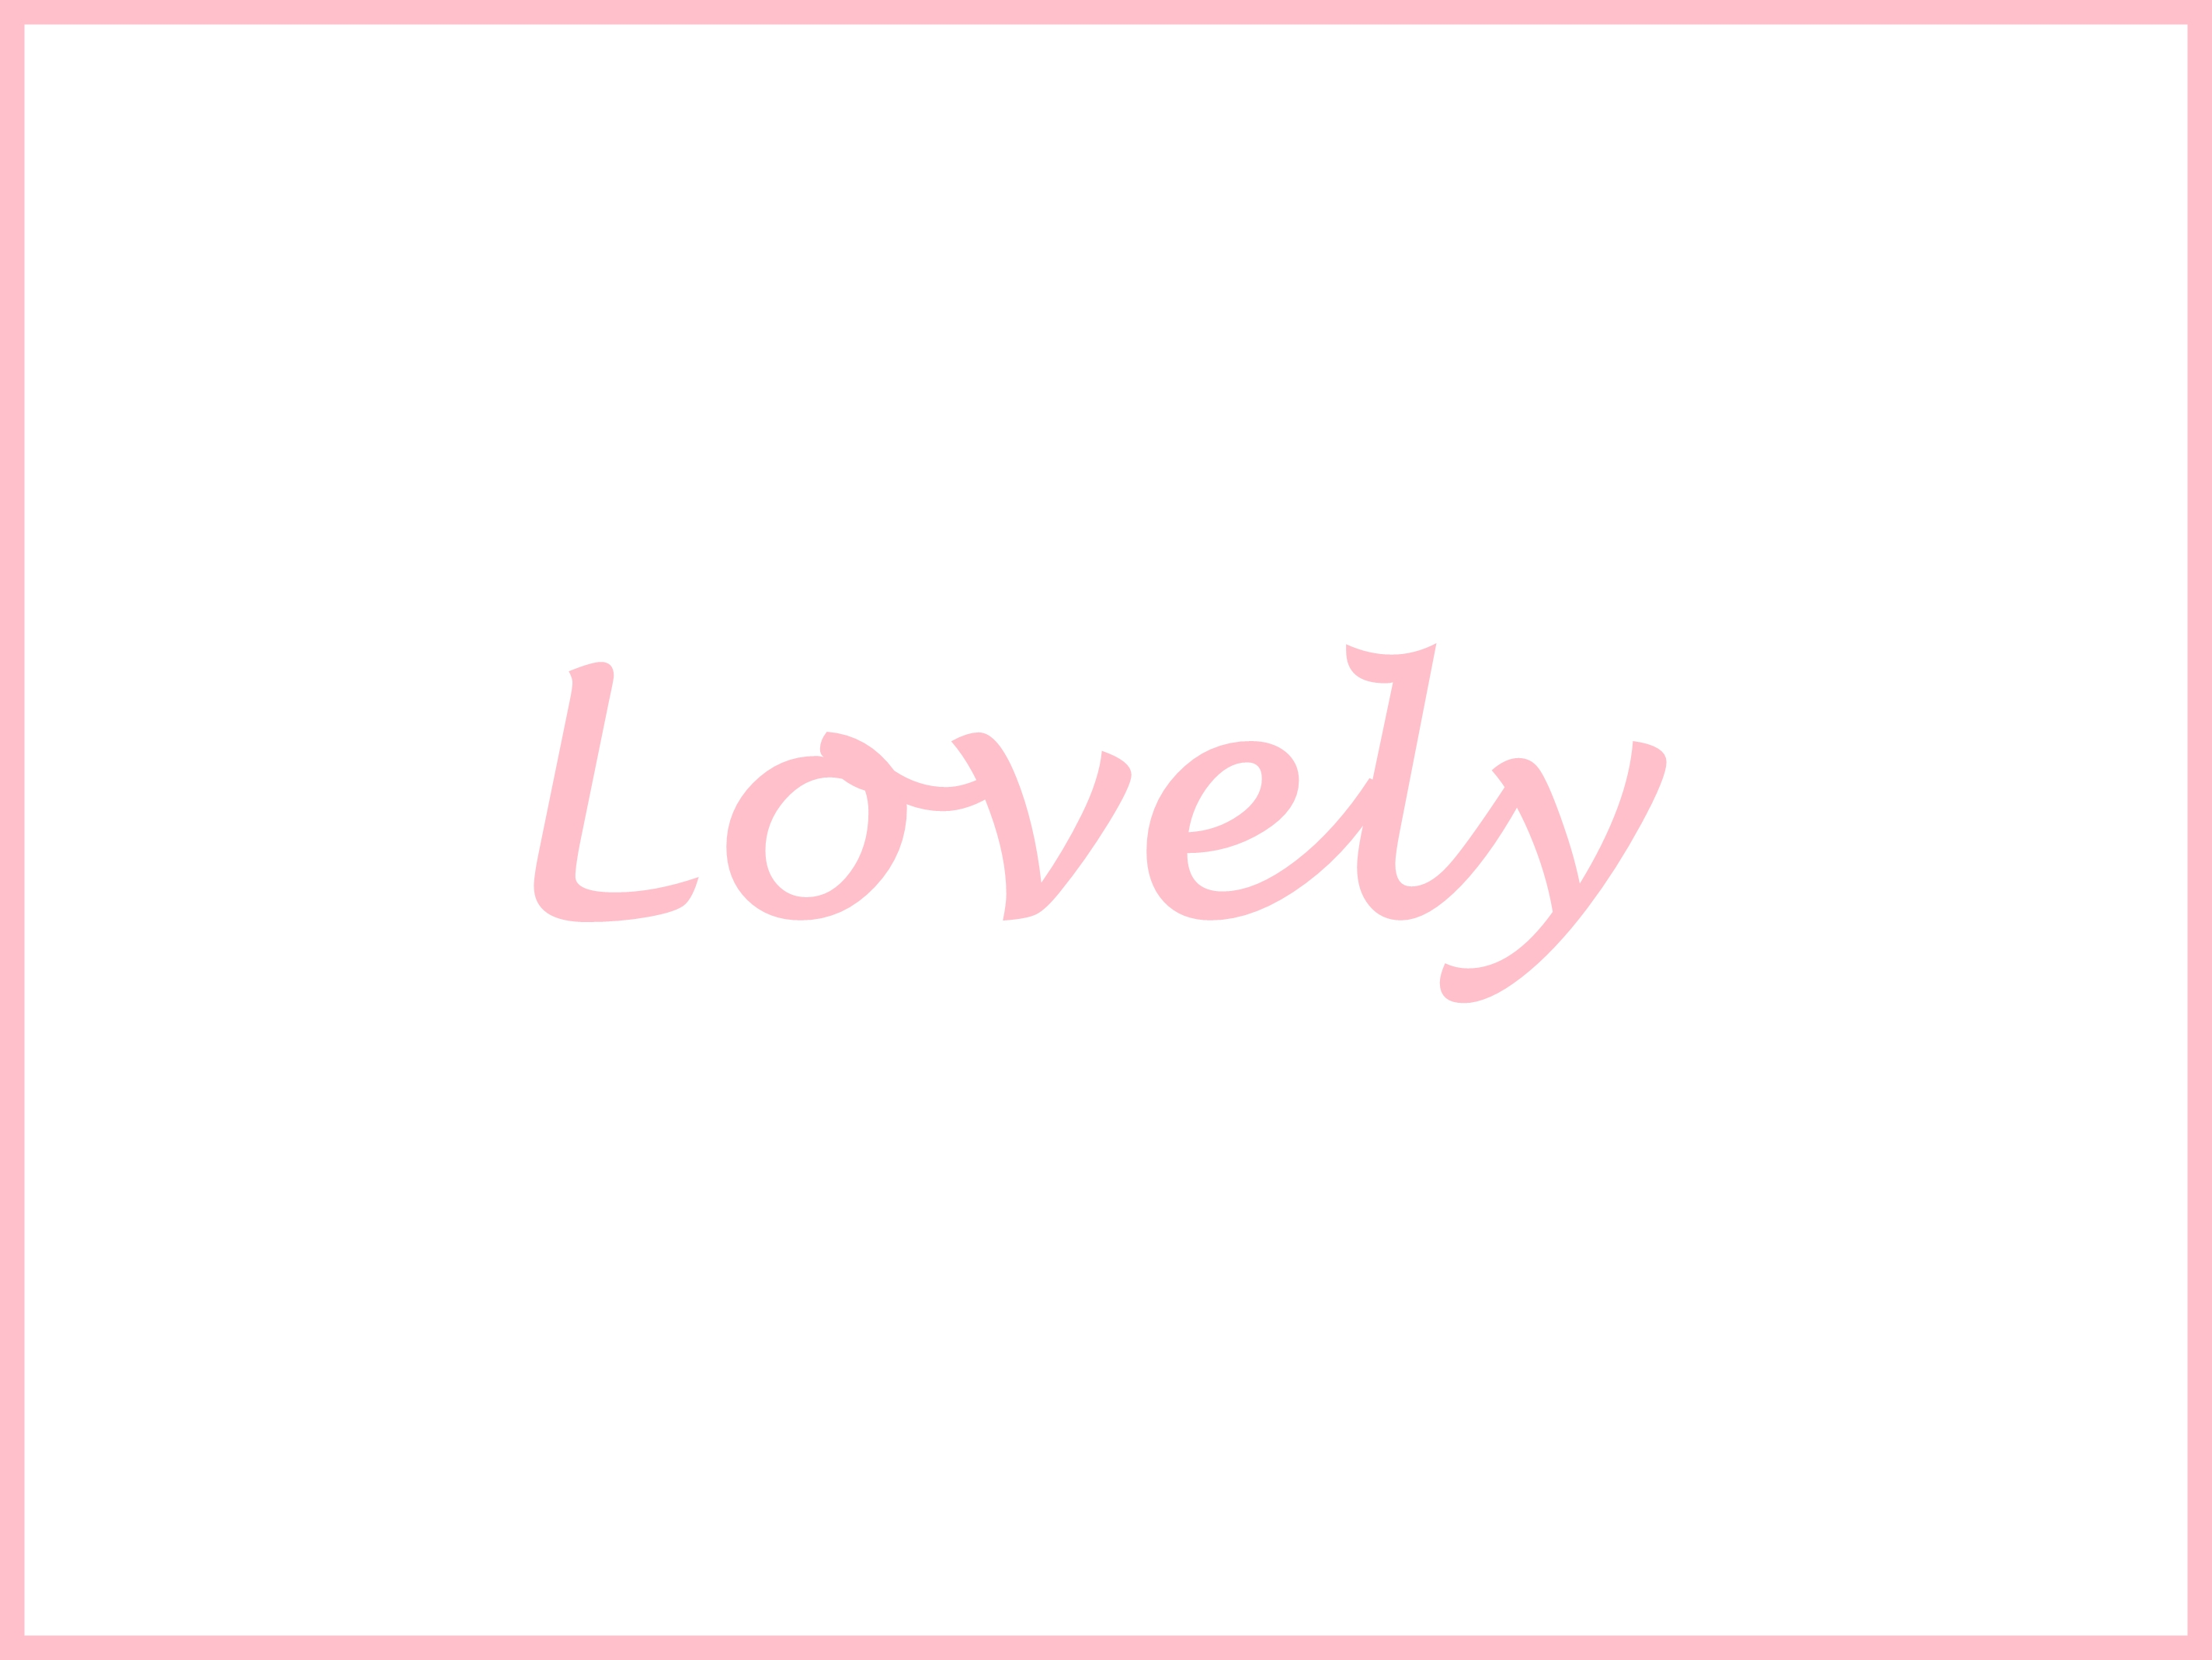 lovely-cover_Katharine-fashion is beautiful_Katarína Jakubčová_Fashion blogger